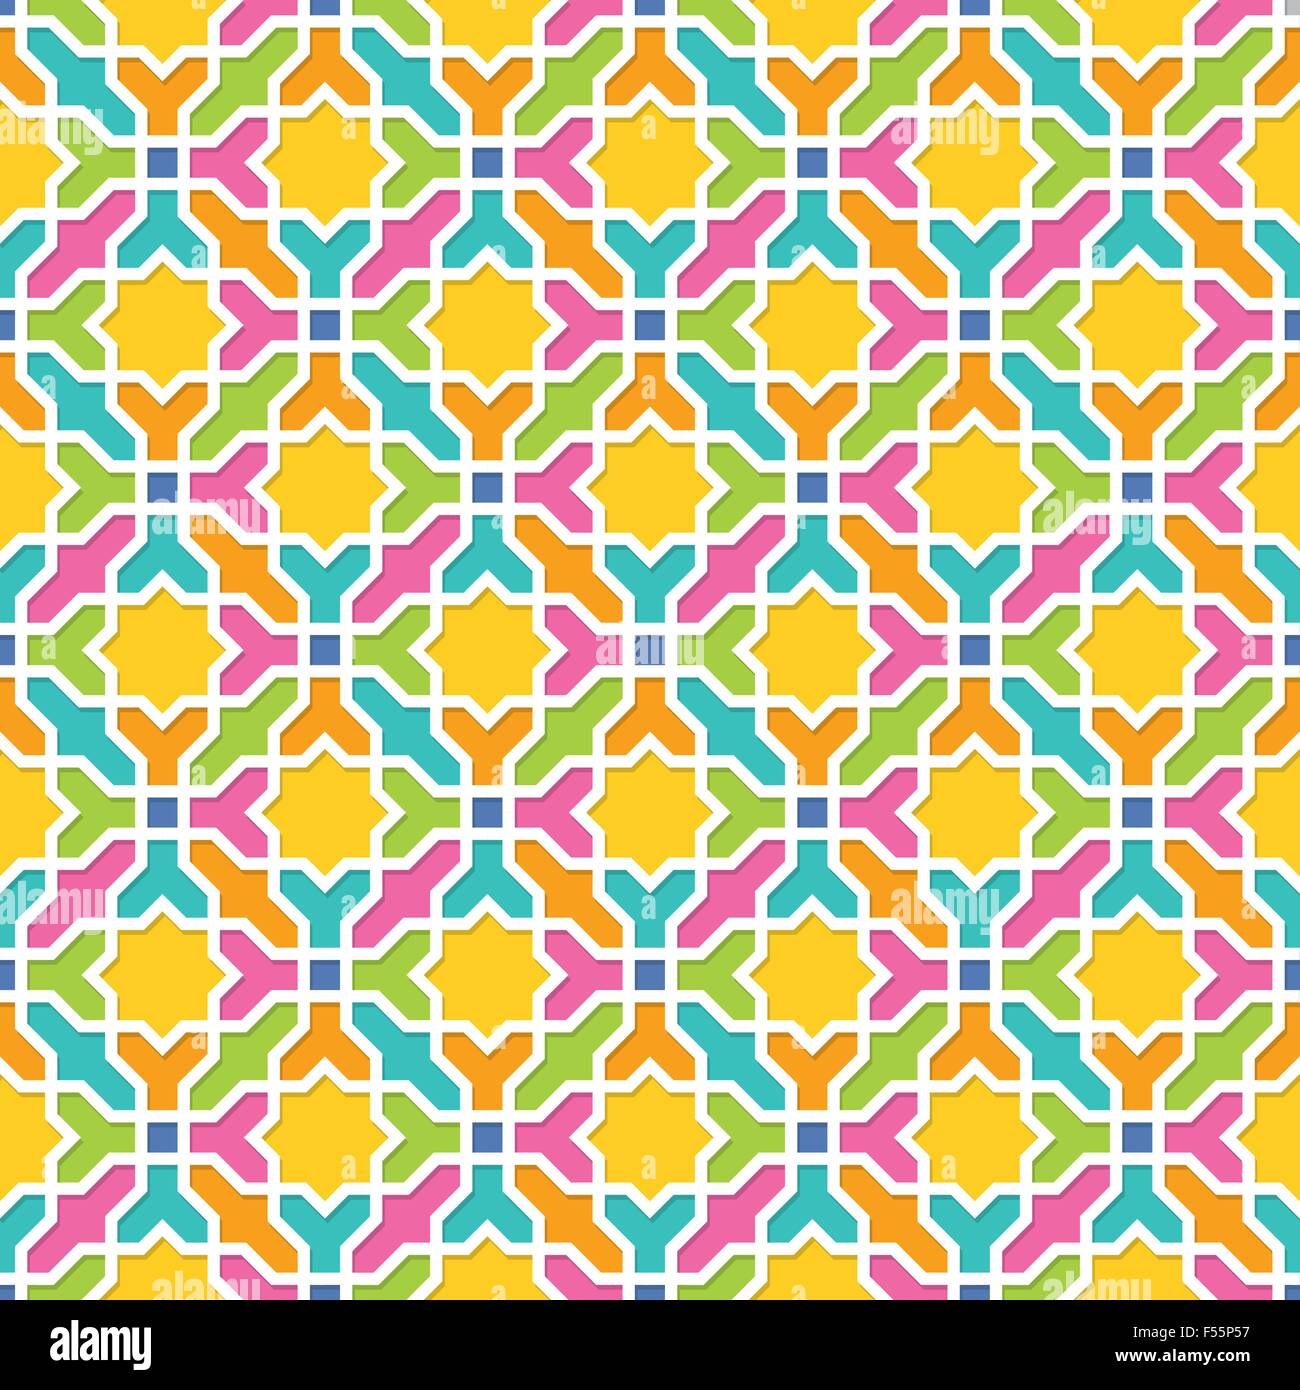 seamless pattern in islamic style stock photos seamless pattern in